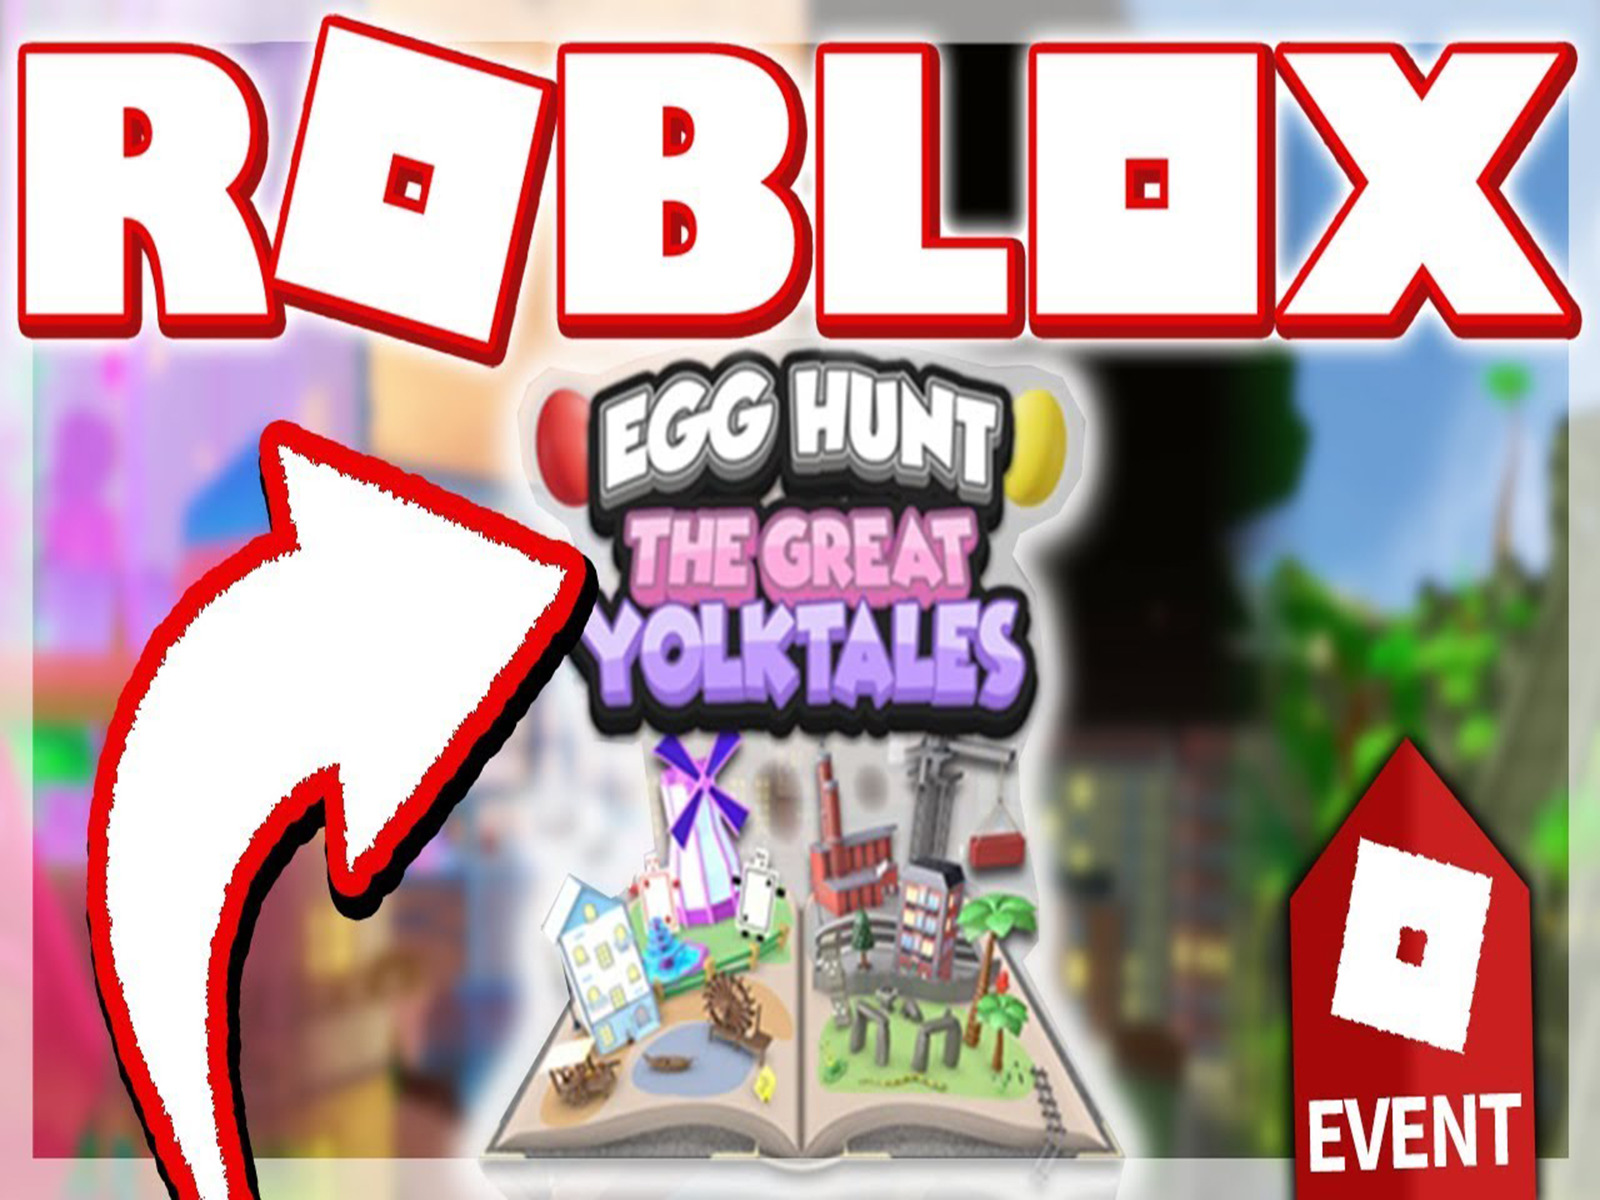 Eggs Being Leaked Egg Hunt 2019 Leaks Roblox - Prime Video Clip Twiistedpandora